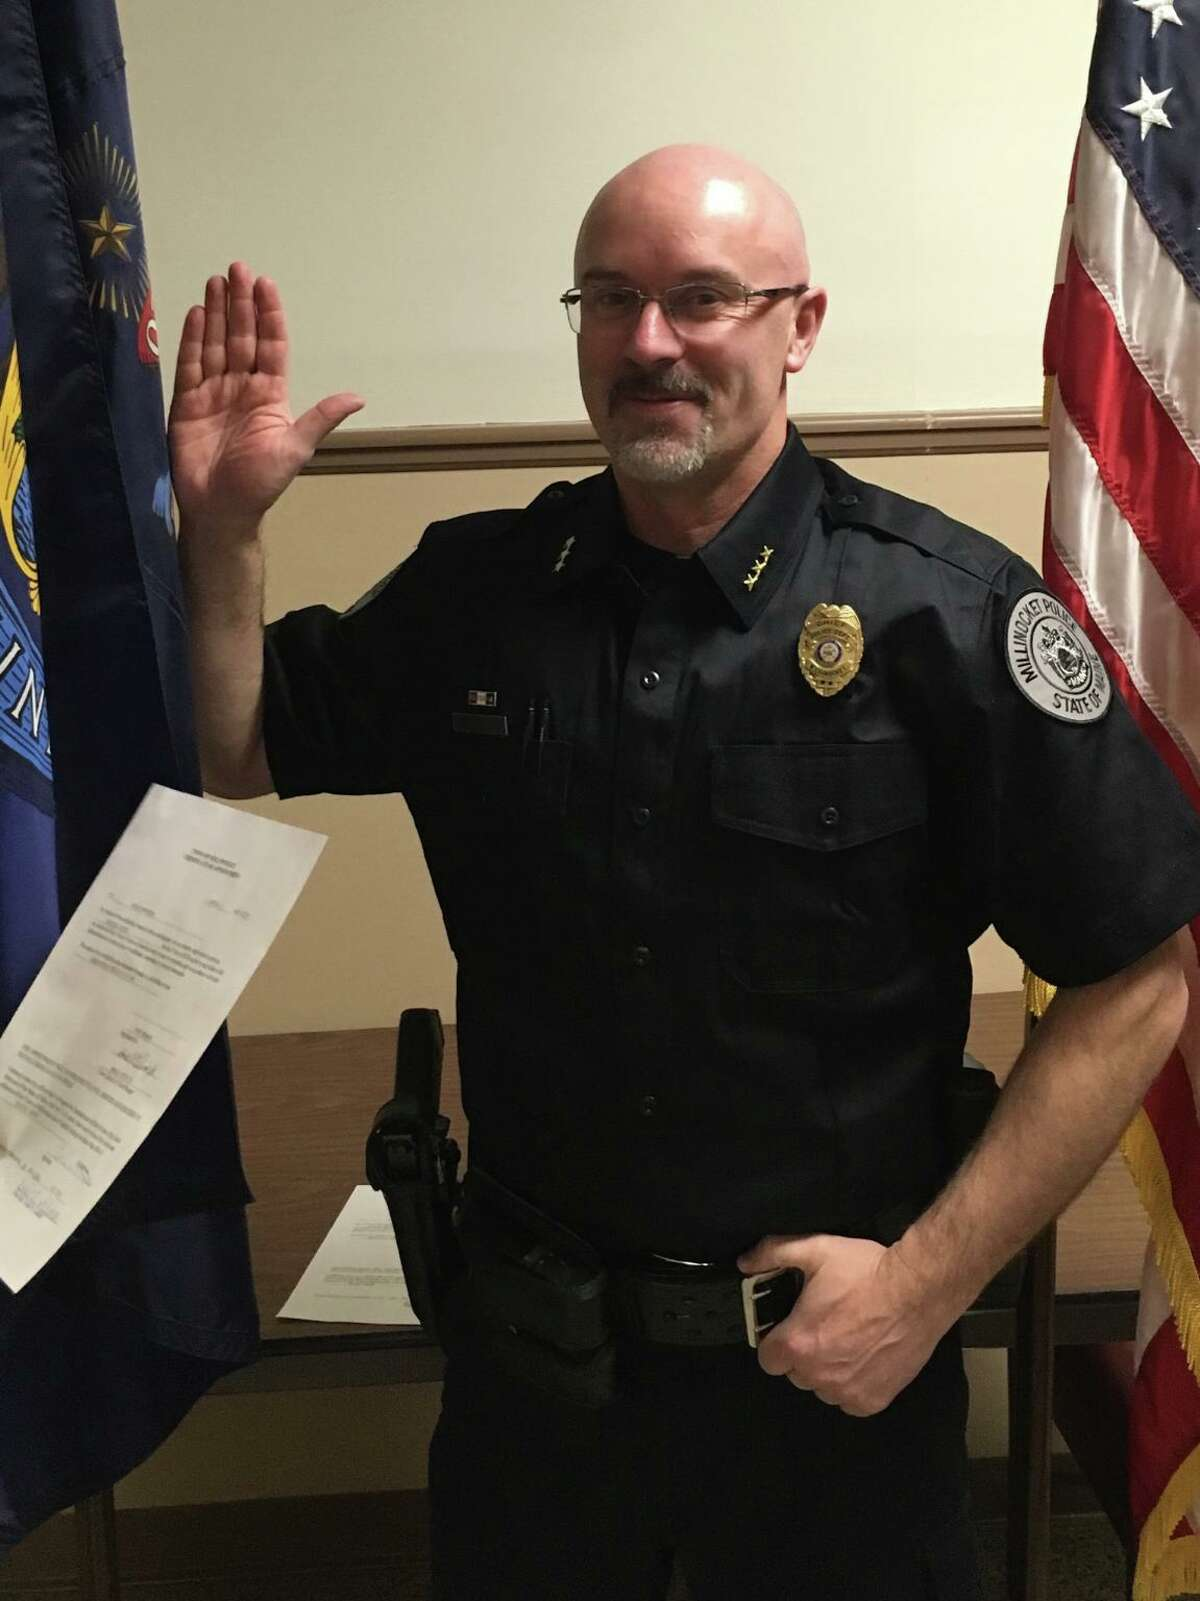 Craig Worster is sworn in as the police chief in Millinocket, Maine.